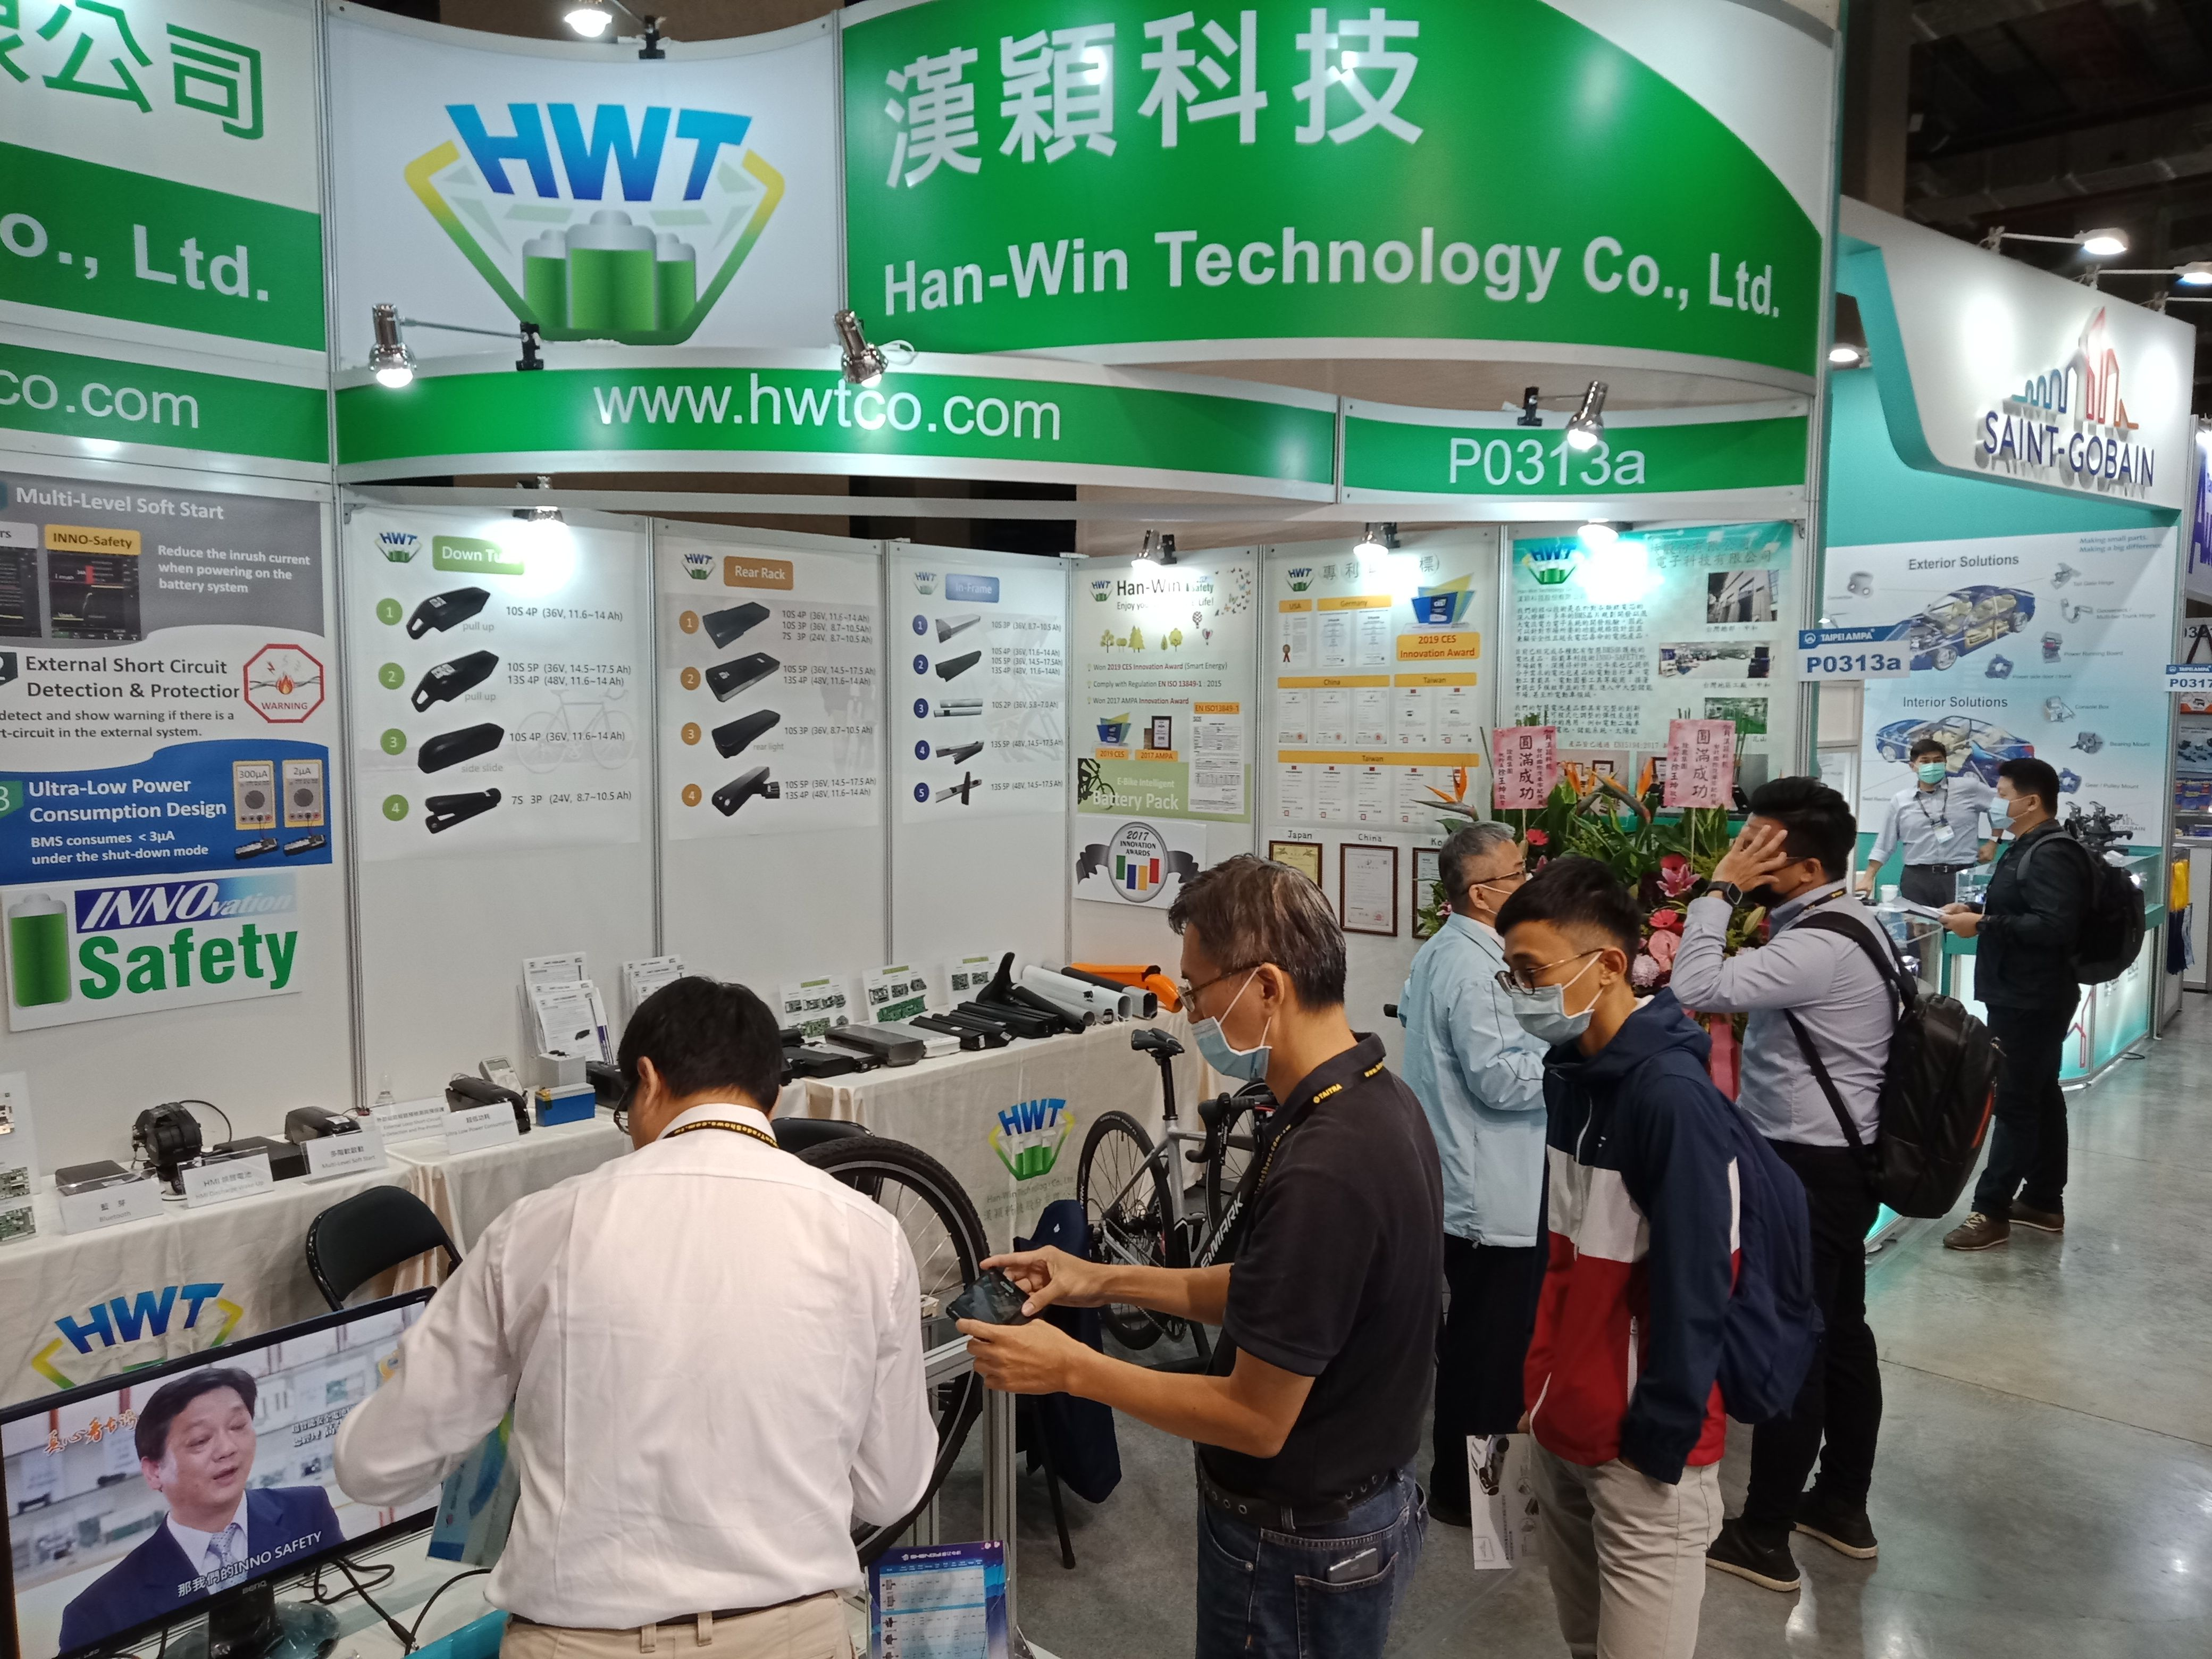 https://storage.googleapis.com/www.taiwantradeshow.com.tw/activity-photo/202010/T-57169561-name.jpg